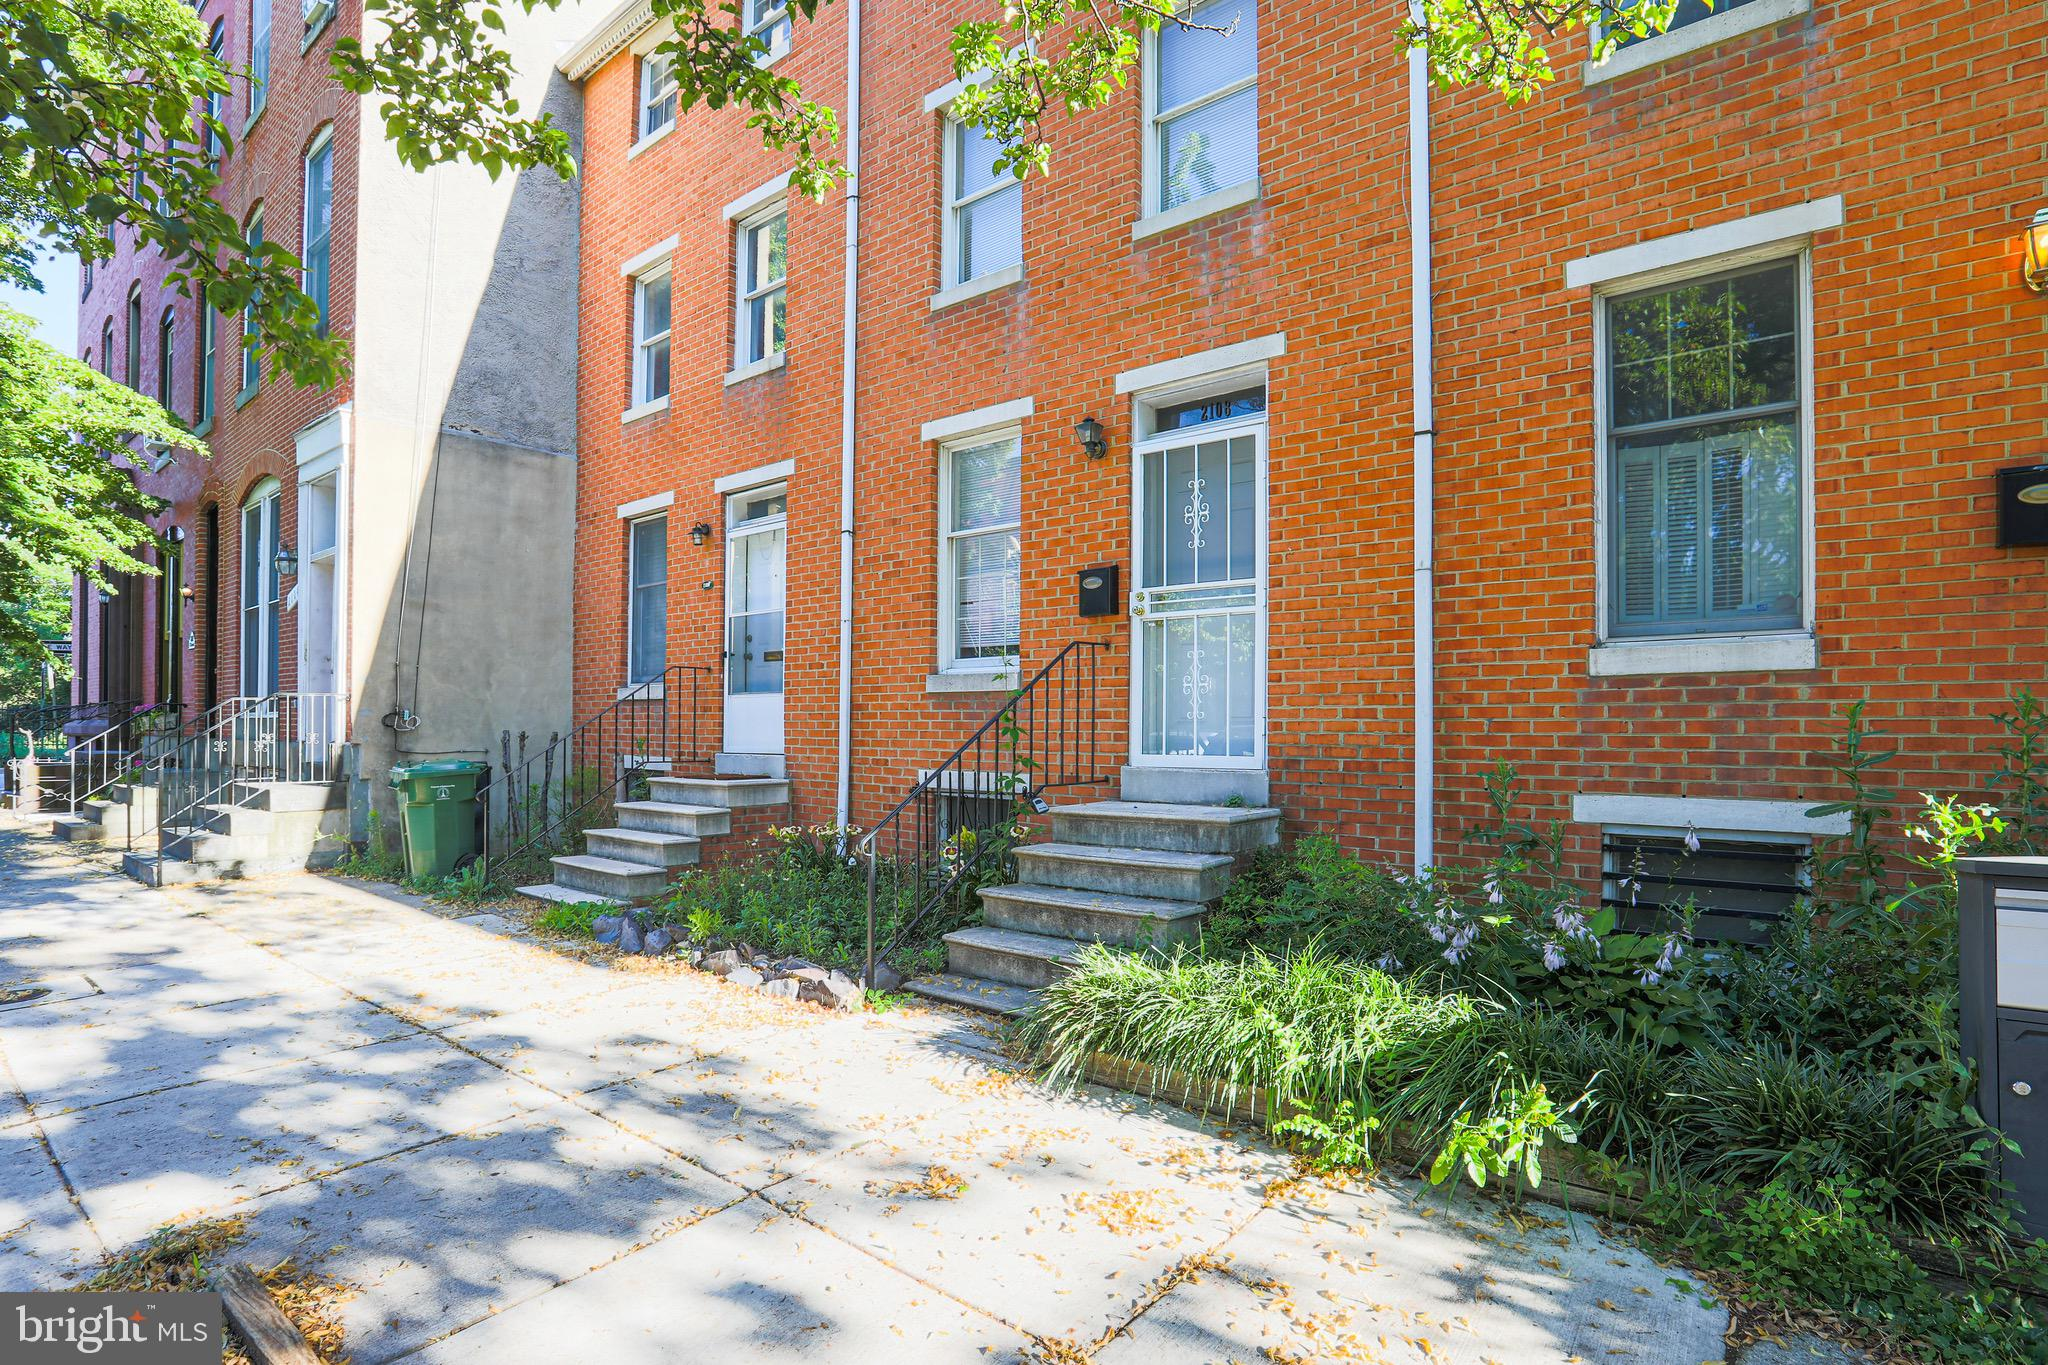 This gorgeous home is situated in the heart of Baltimore in the desirable Butcher's Hill neighborhood. It boasts 3 bedrooms and 2.5 bathrooms, a finished basement, and room for even more space with an office/den upstairs. Relax and enjoy the outdoors in the spacious yard, perfect for entertaining or gardening. Balcony off the second level for additional outdoor space. Take advantage of convenient location to explore all the city has to offer. This one-way street means less noise and more parking!